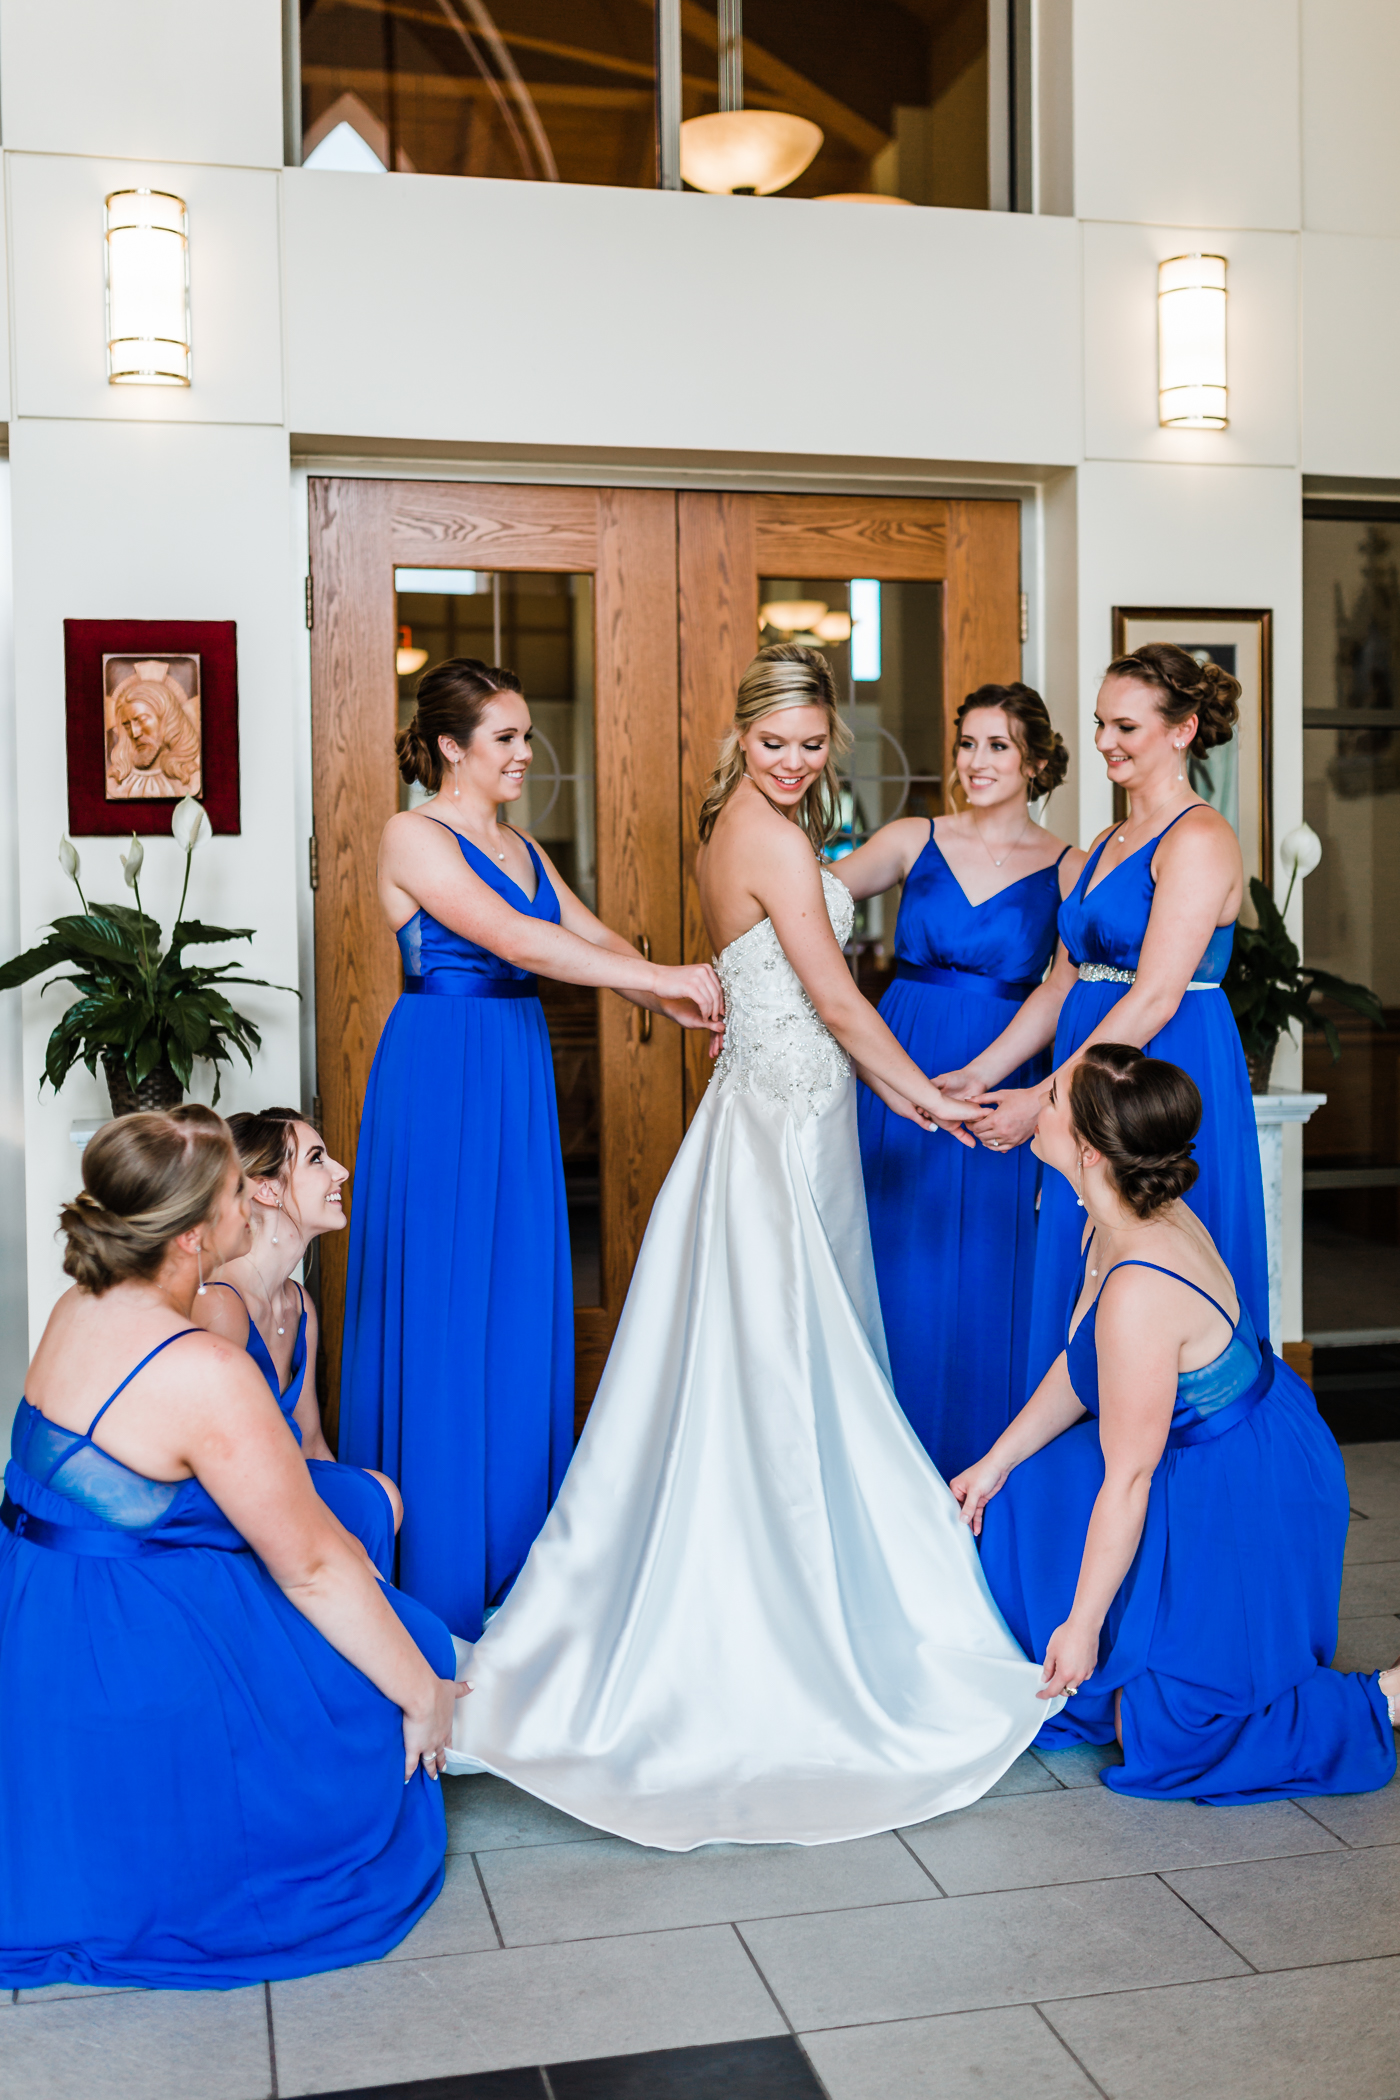 royal blue bridesmaids dresses inspo - satin wedding gown in Maryland